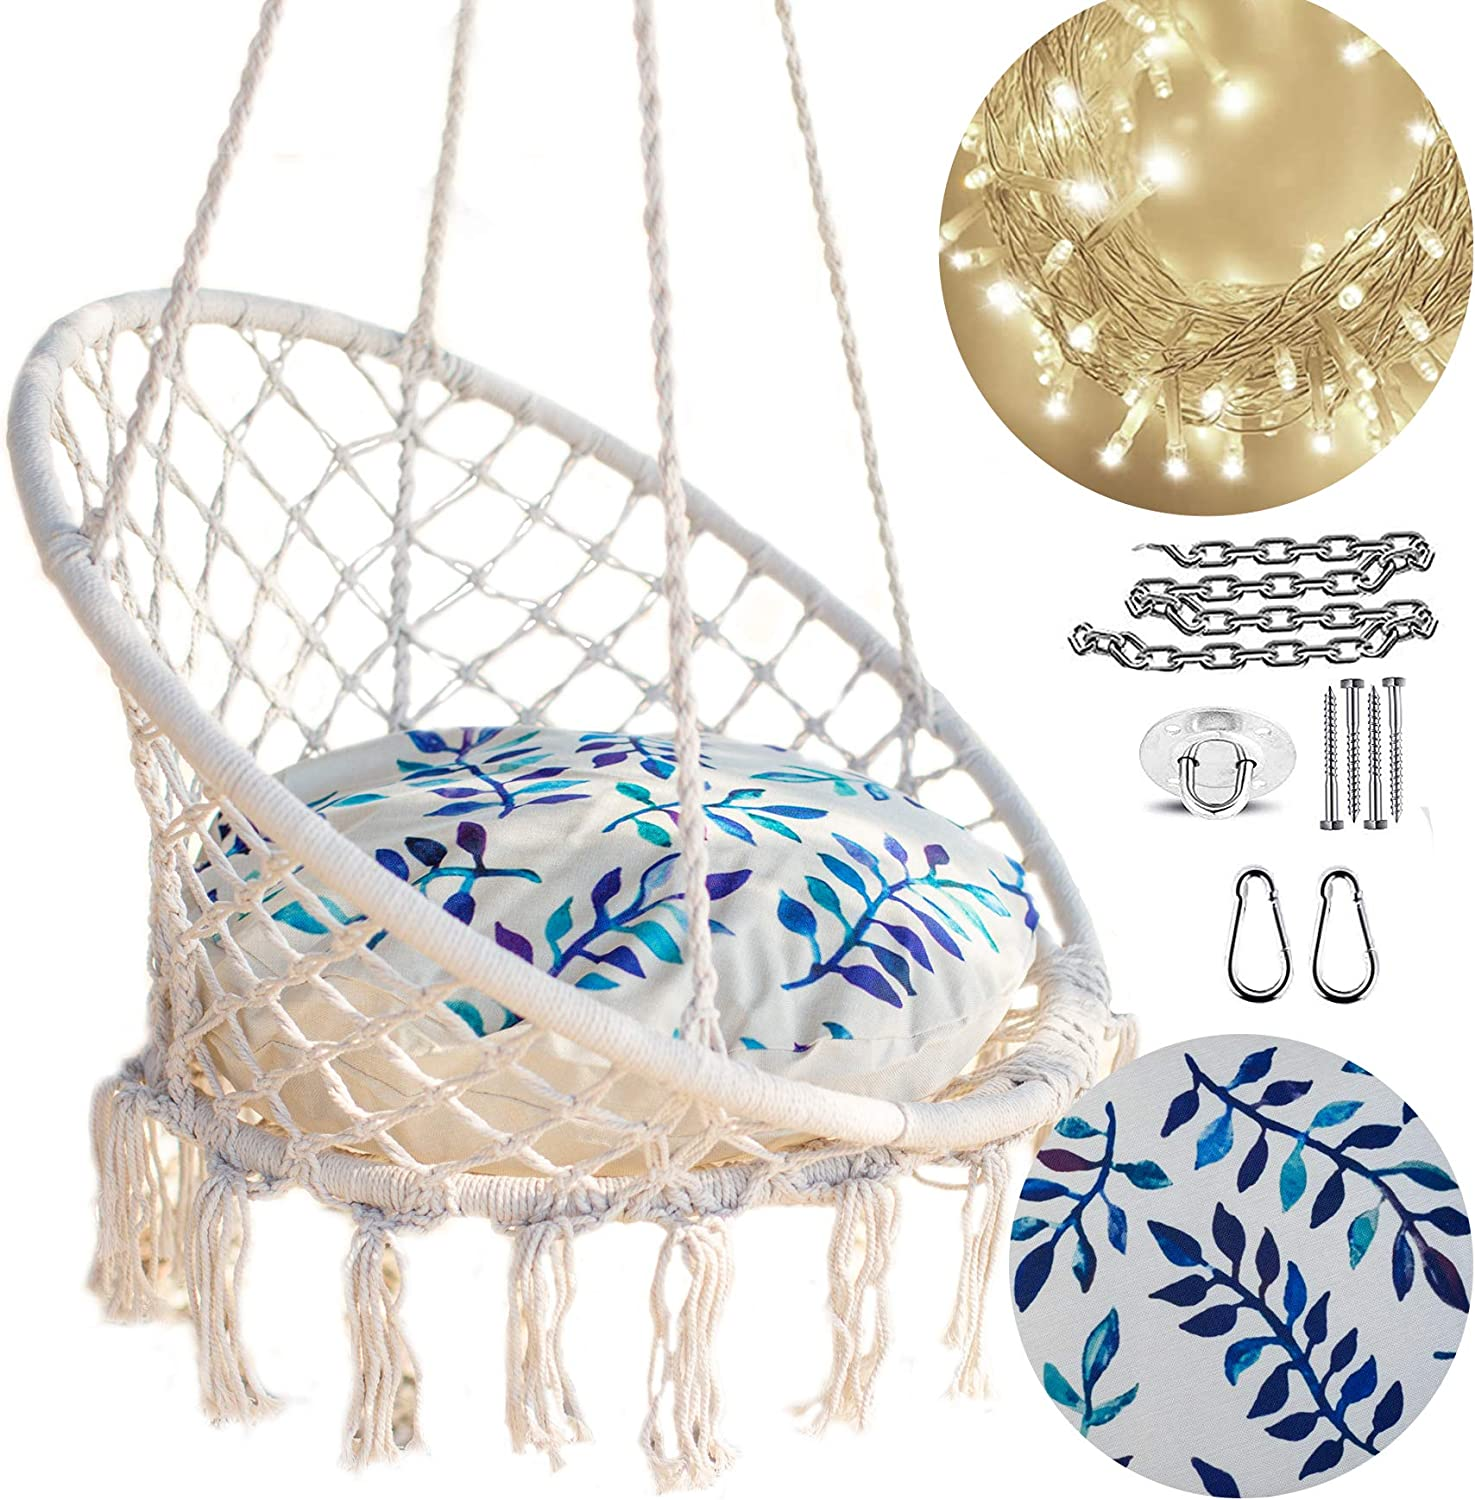 Nooksta Macrame Hanging Chair Swing, Outdoor Swing Chair With Stand Canada